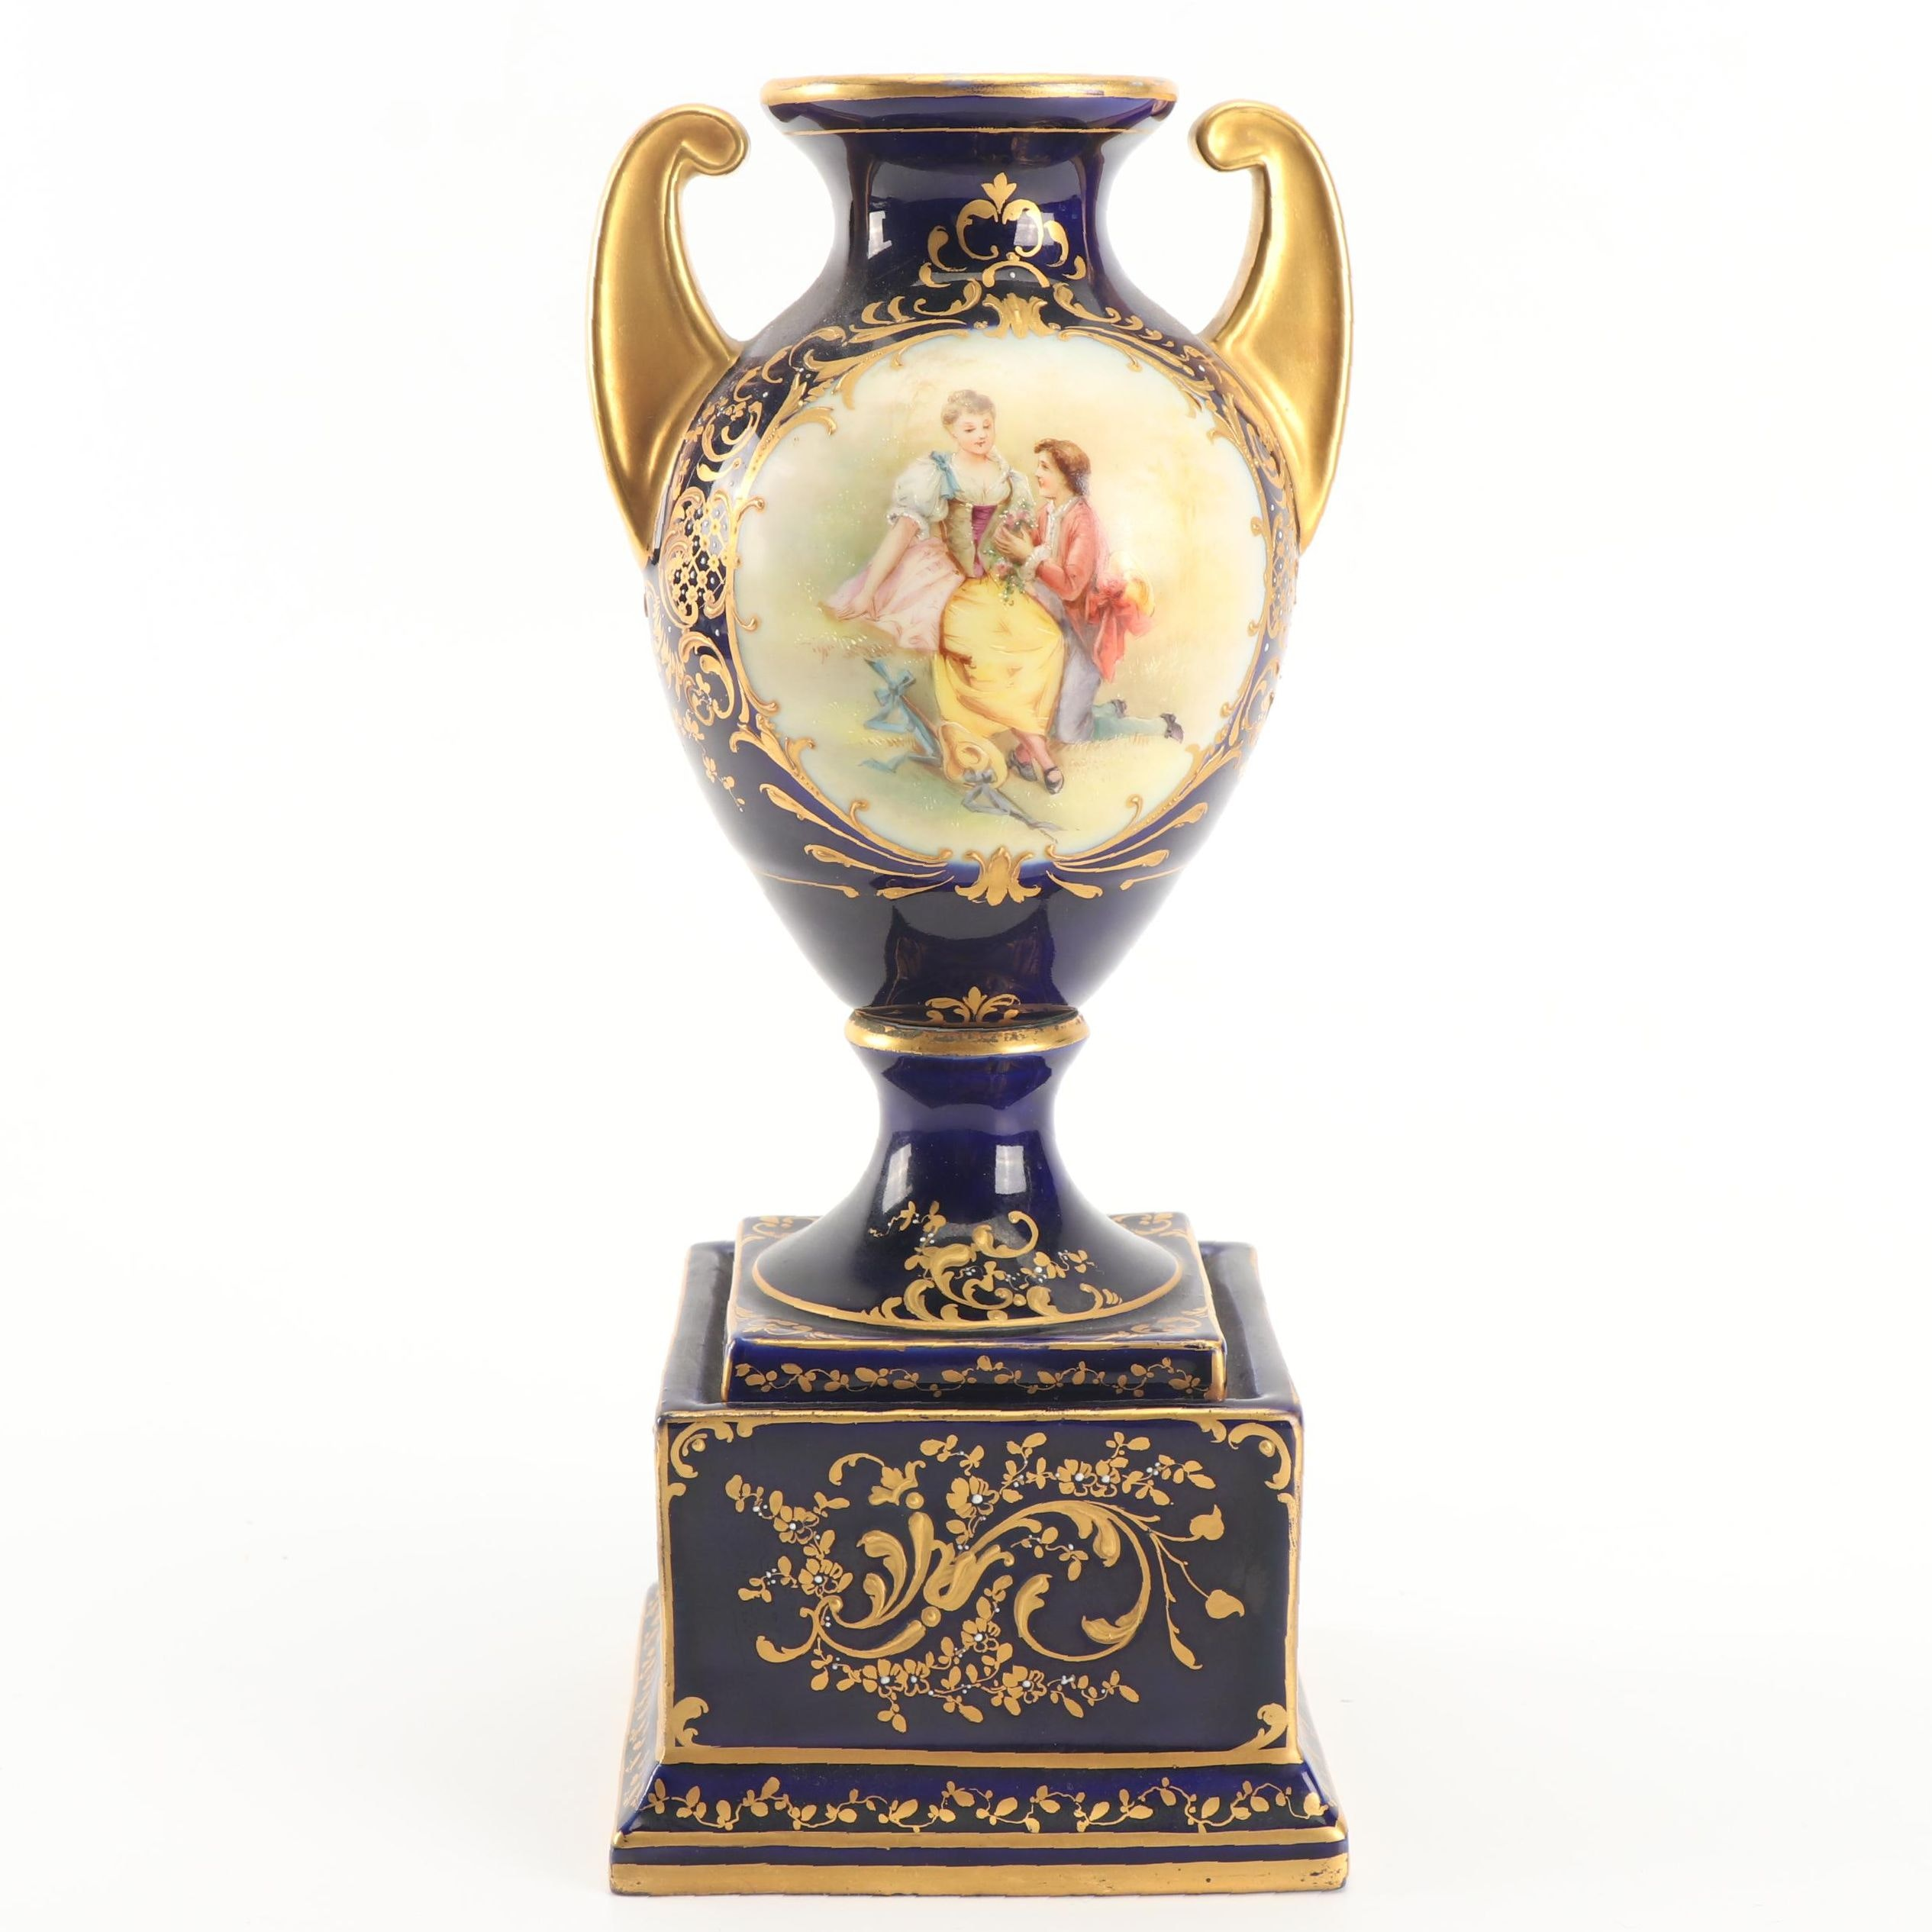 Ackermann and Fritz Royal Vienna Style Porcelain Vase